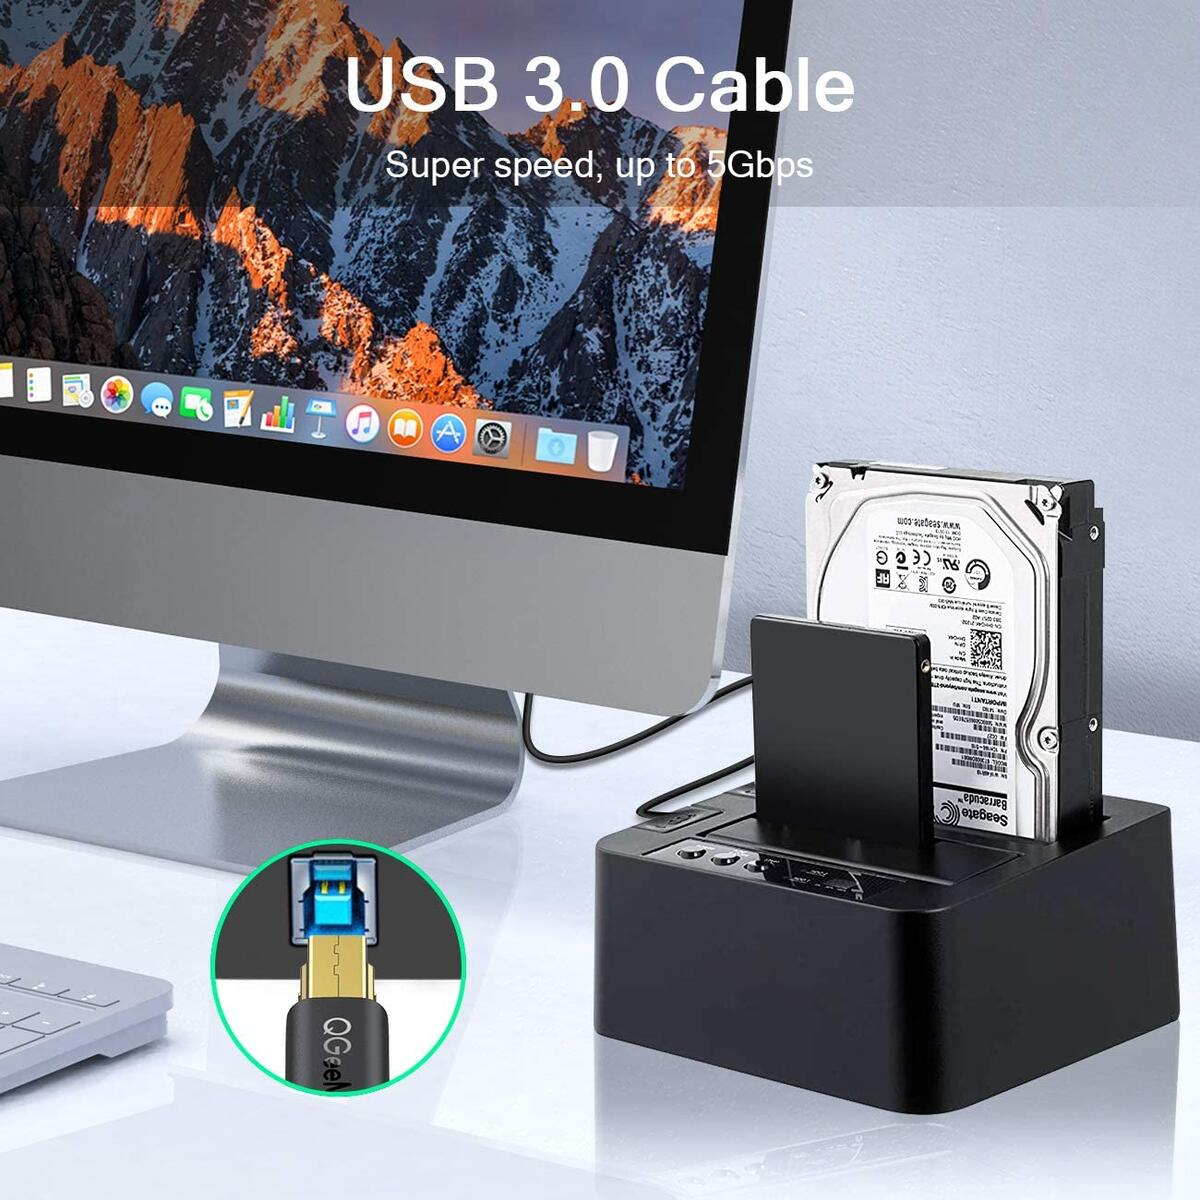 Printer Cable USB 3.0 Cable 3FT, Superspeed USB 3.0 Cable A Male to B Male Compatible with Docking Station, Monitor, External Hard Drivers, Scanner and More, USB 3.0 Upstream Cable